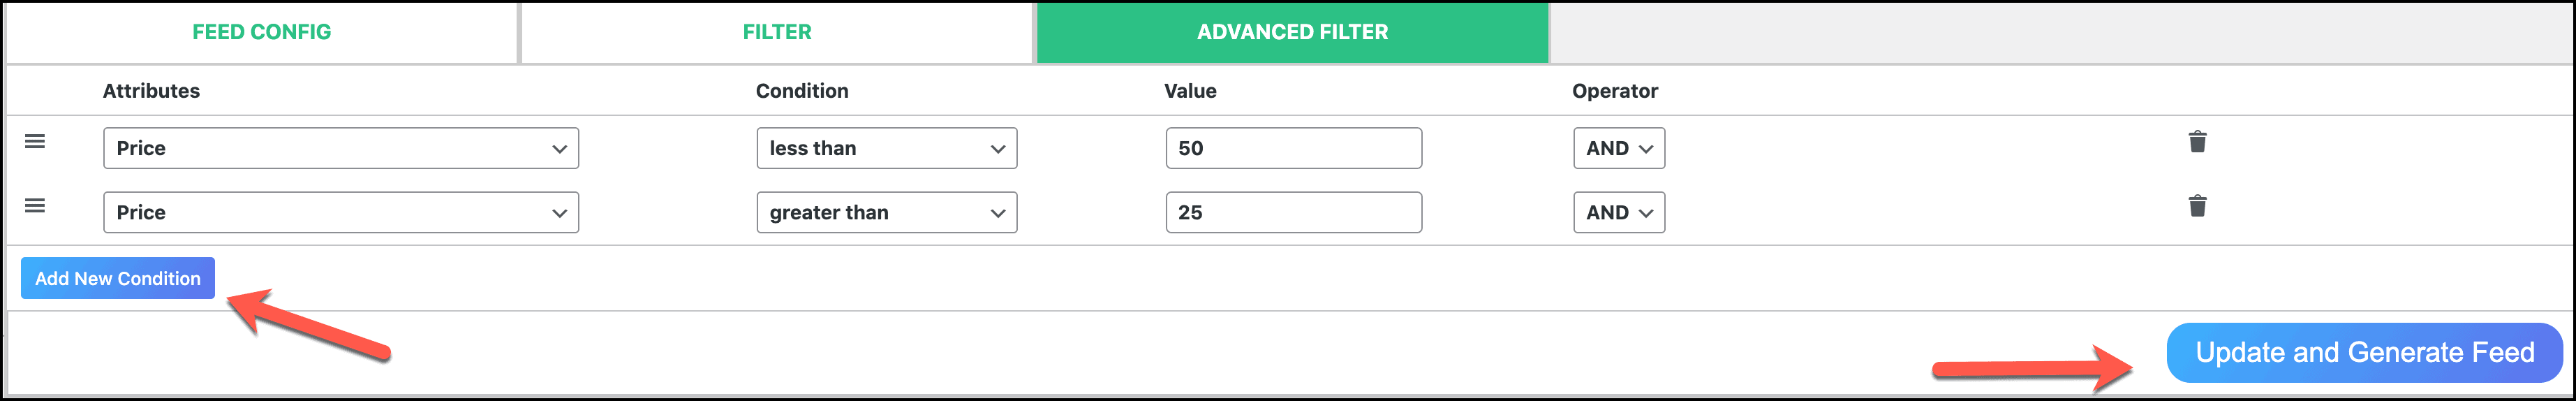 CTX Feed Advanced filter